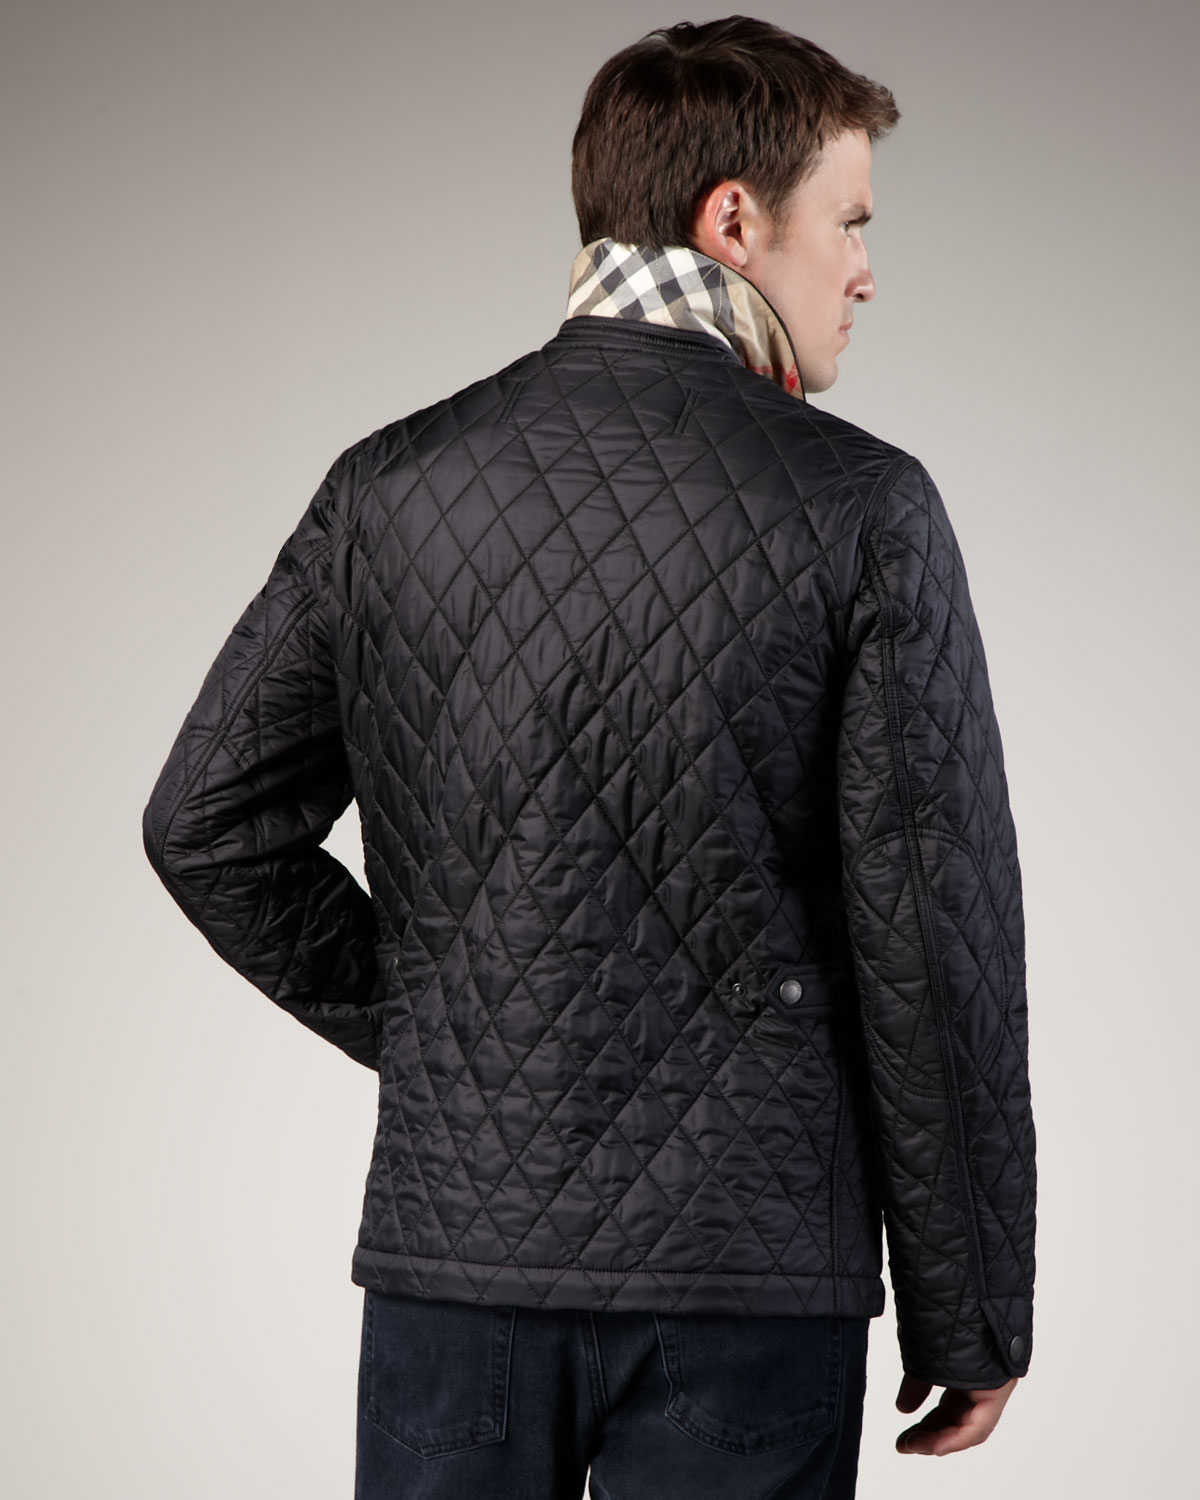 Lyst - Burberry brit Classic Quilted Jacket in Black for Men : men quilted coat - Adamdwight.com